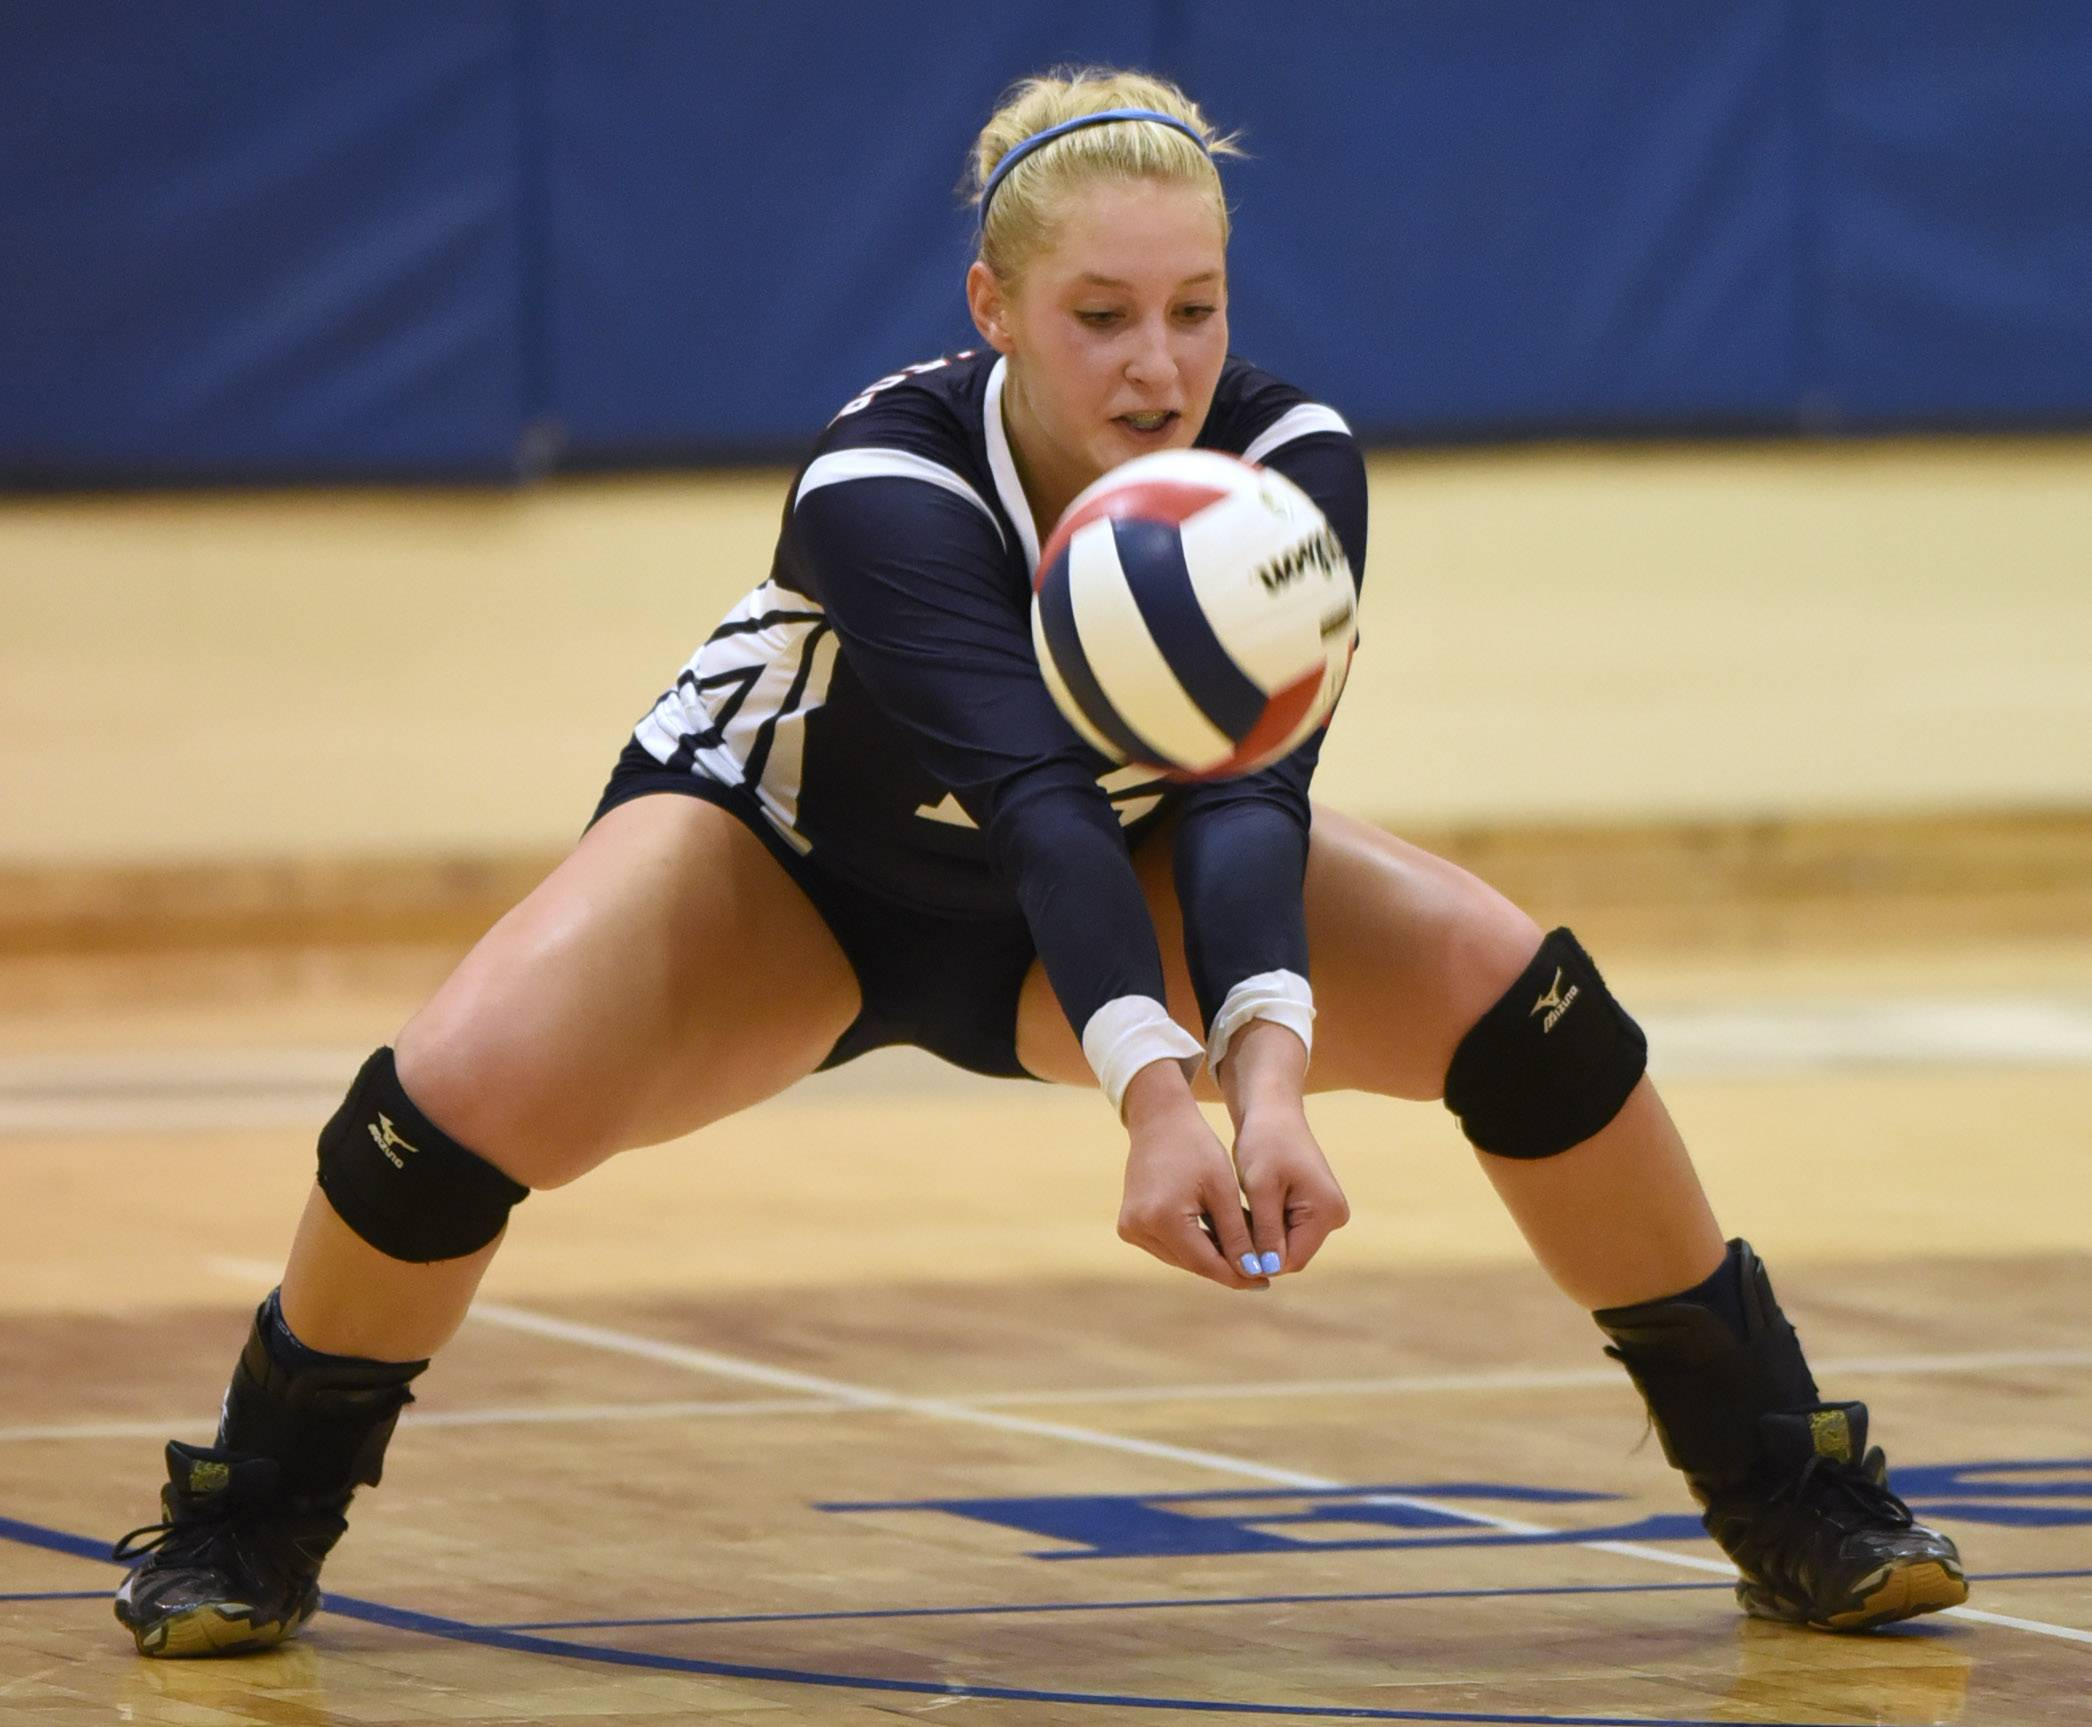 Carrie Leazer has helped St. Viator to a first-ever state appearance in girls volleyball.